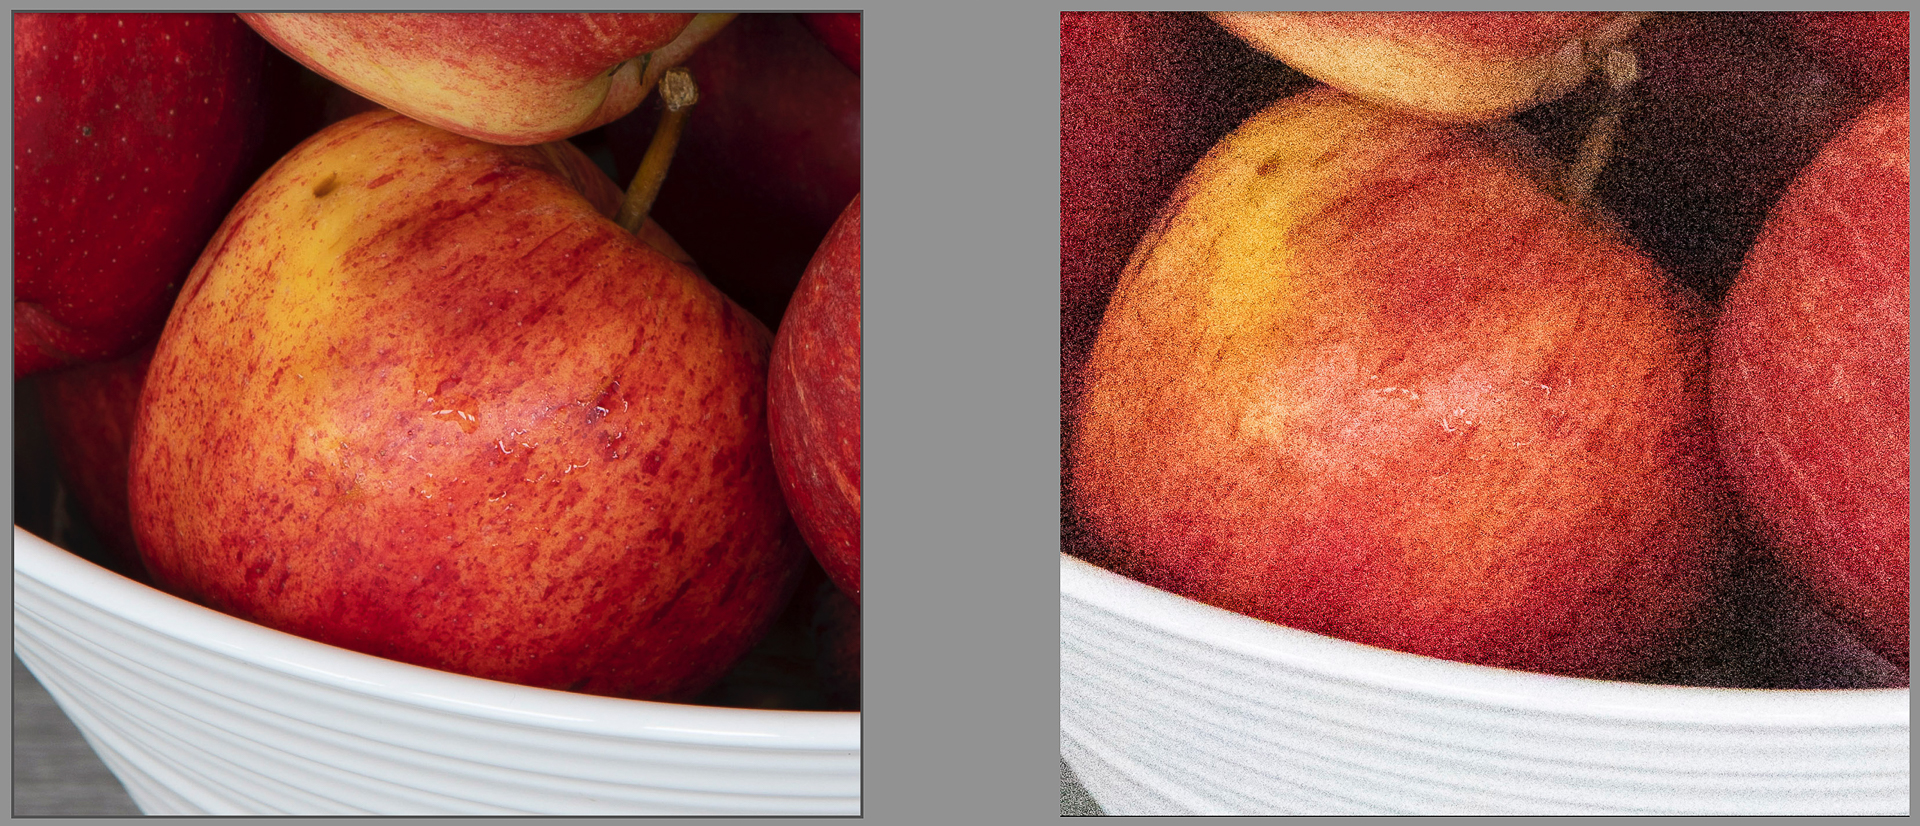 Two images of an apple, one photographed at ISO 100 and the other at ISO 102400